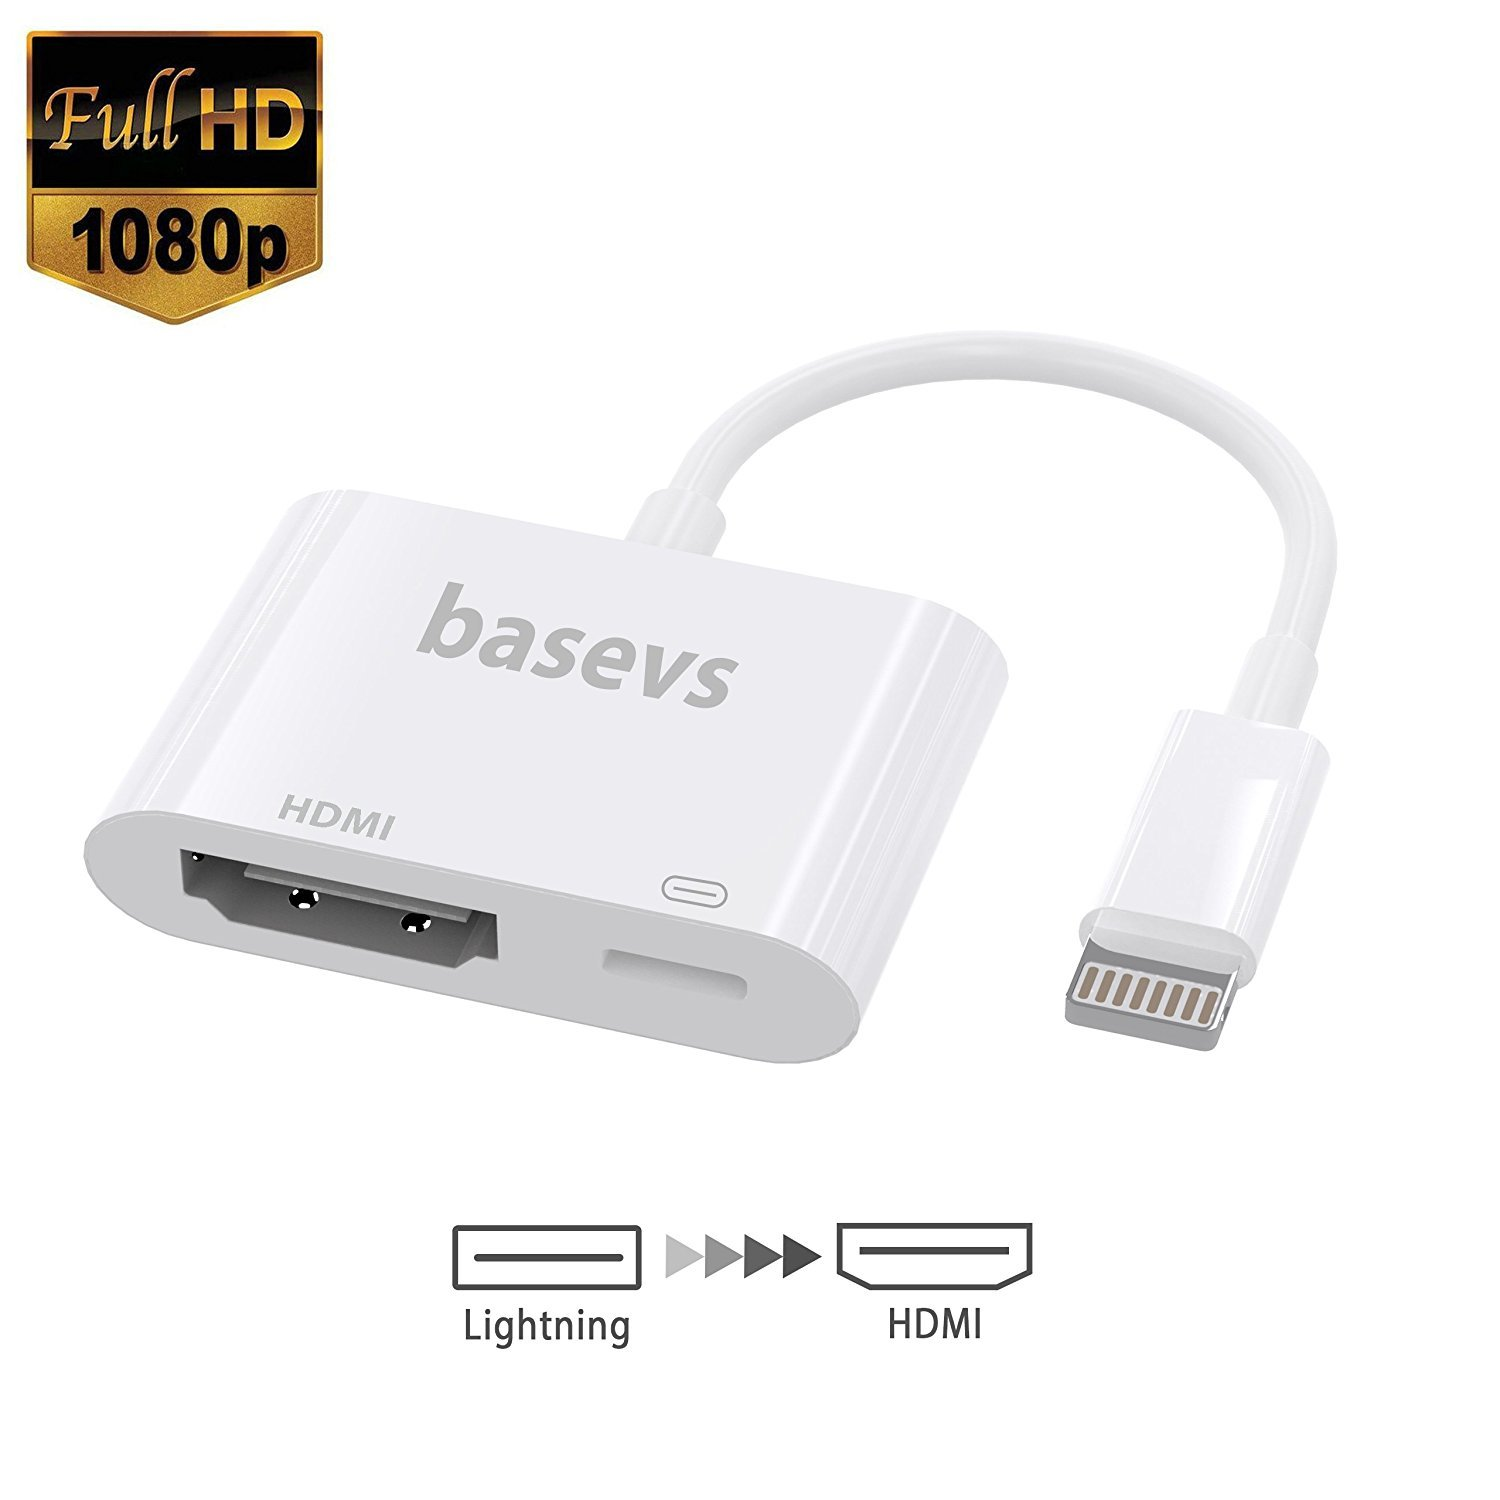 Basevs Lightning to HDMI, Lightning Digital AV Adapter with Lightning 8Pin Charging for HDTV 1080P Monitor Projector for iPhone, iPad and iPod